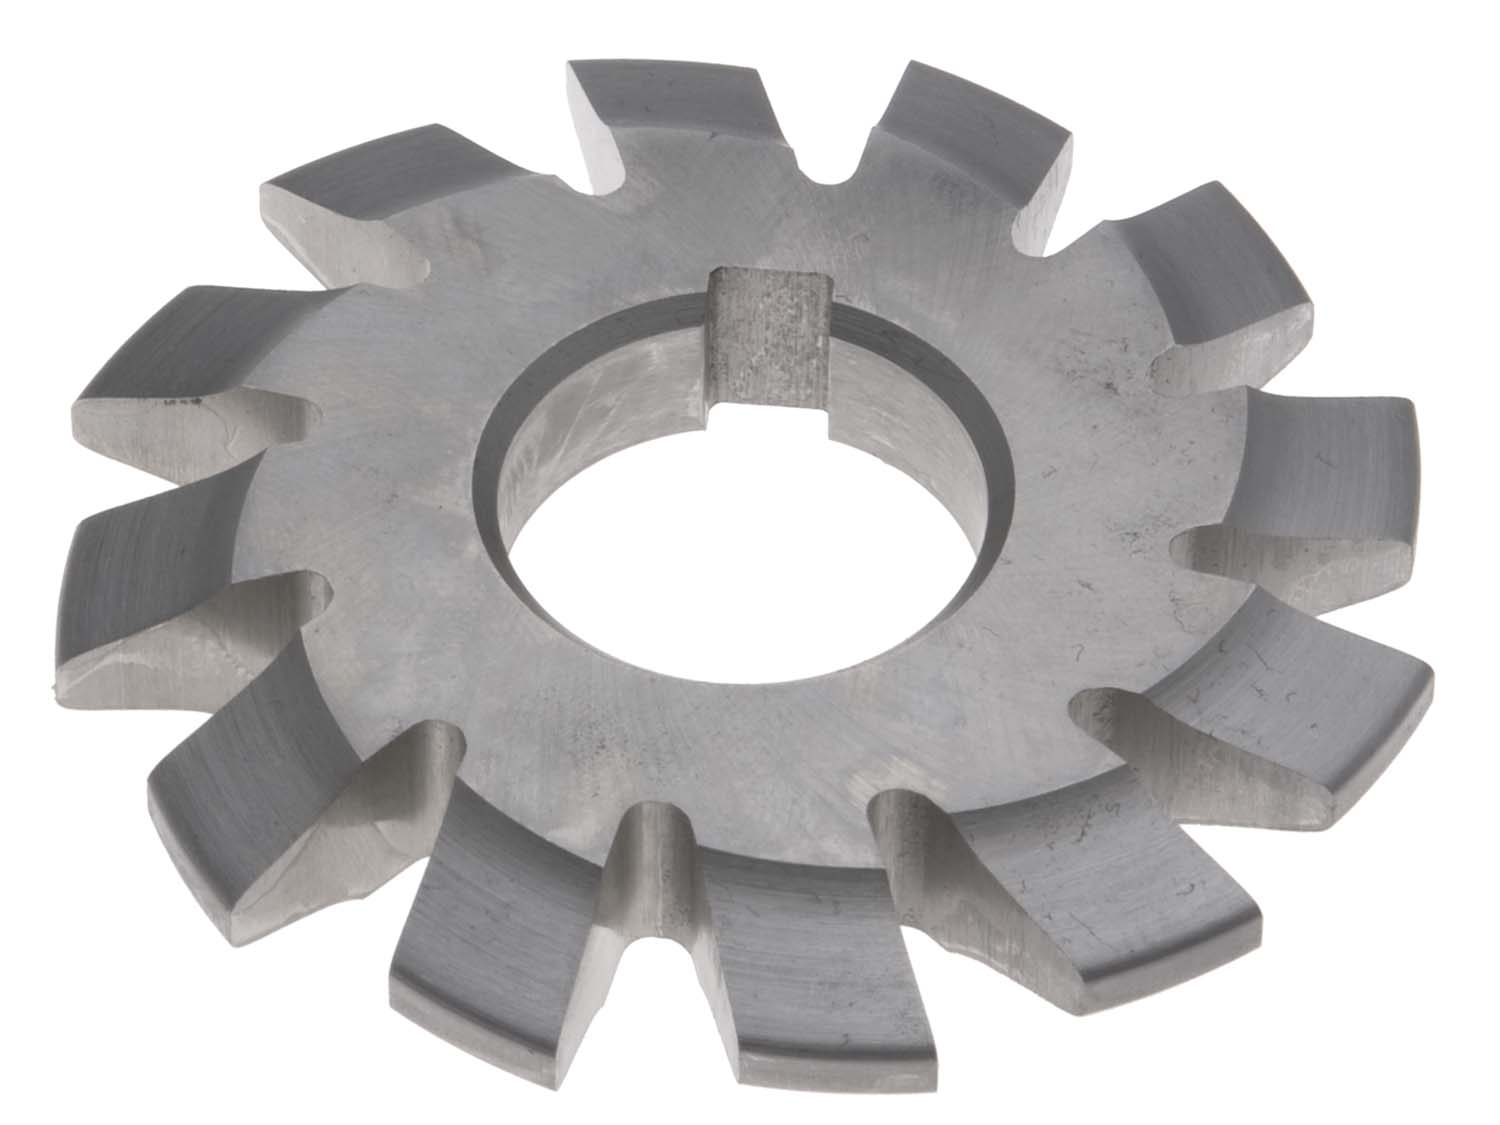 16 Diametral Pitch # 1 Involute Gear Cutter - 1 Inch ID - 14-1/2 Degree Pressure Angle